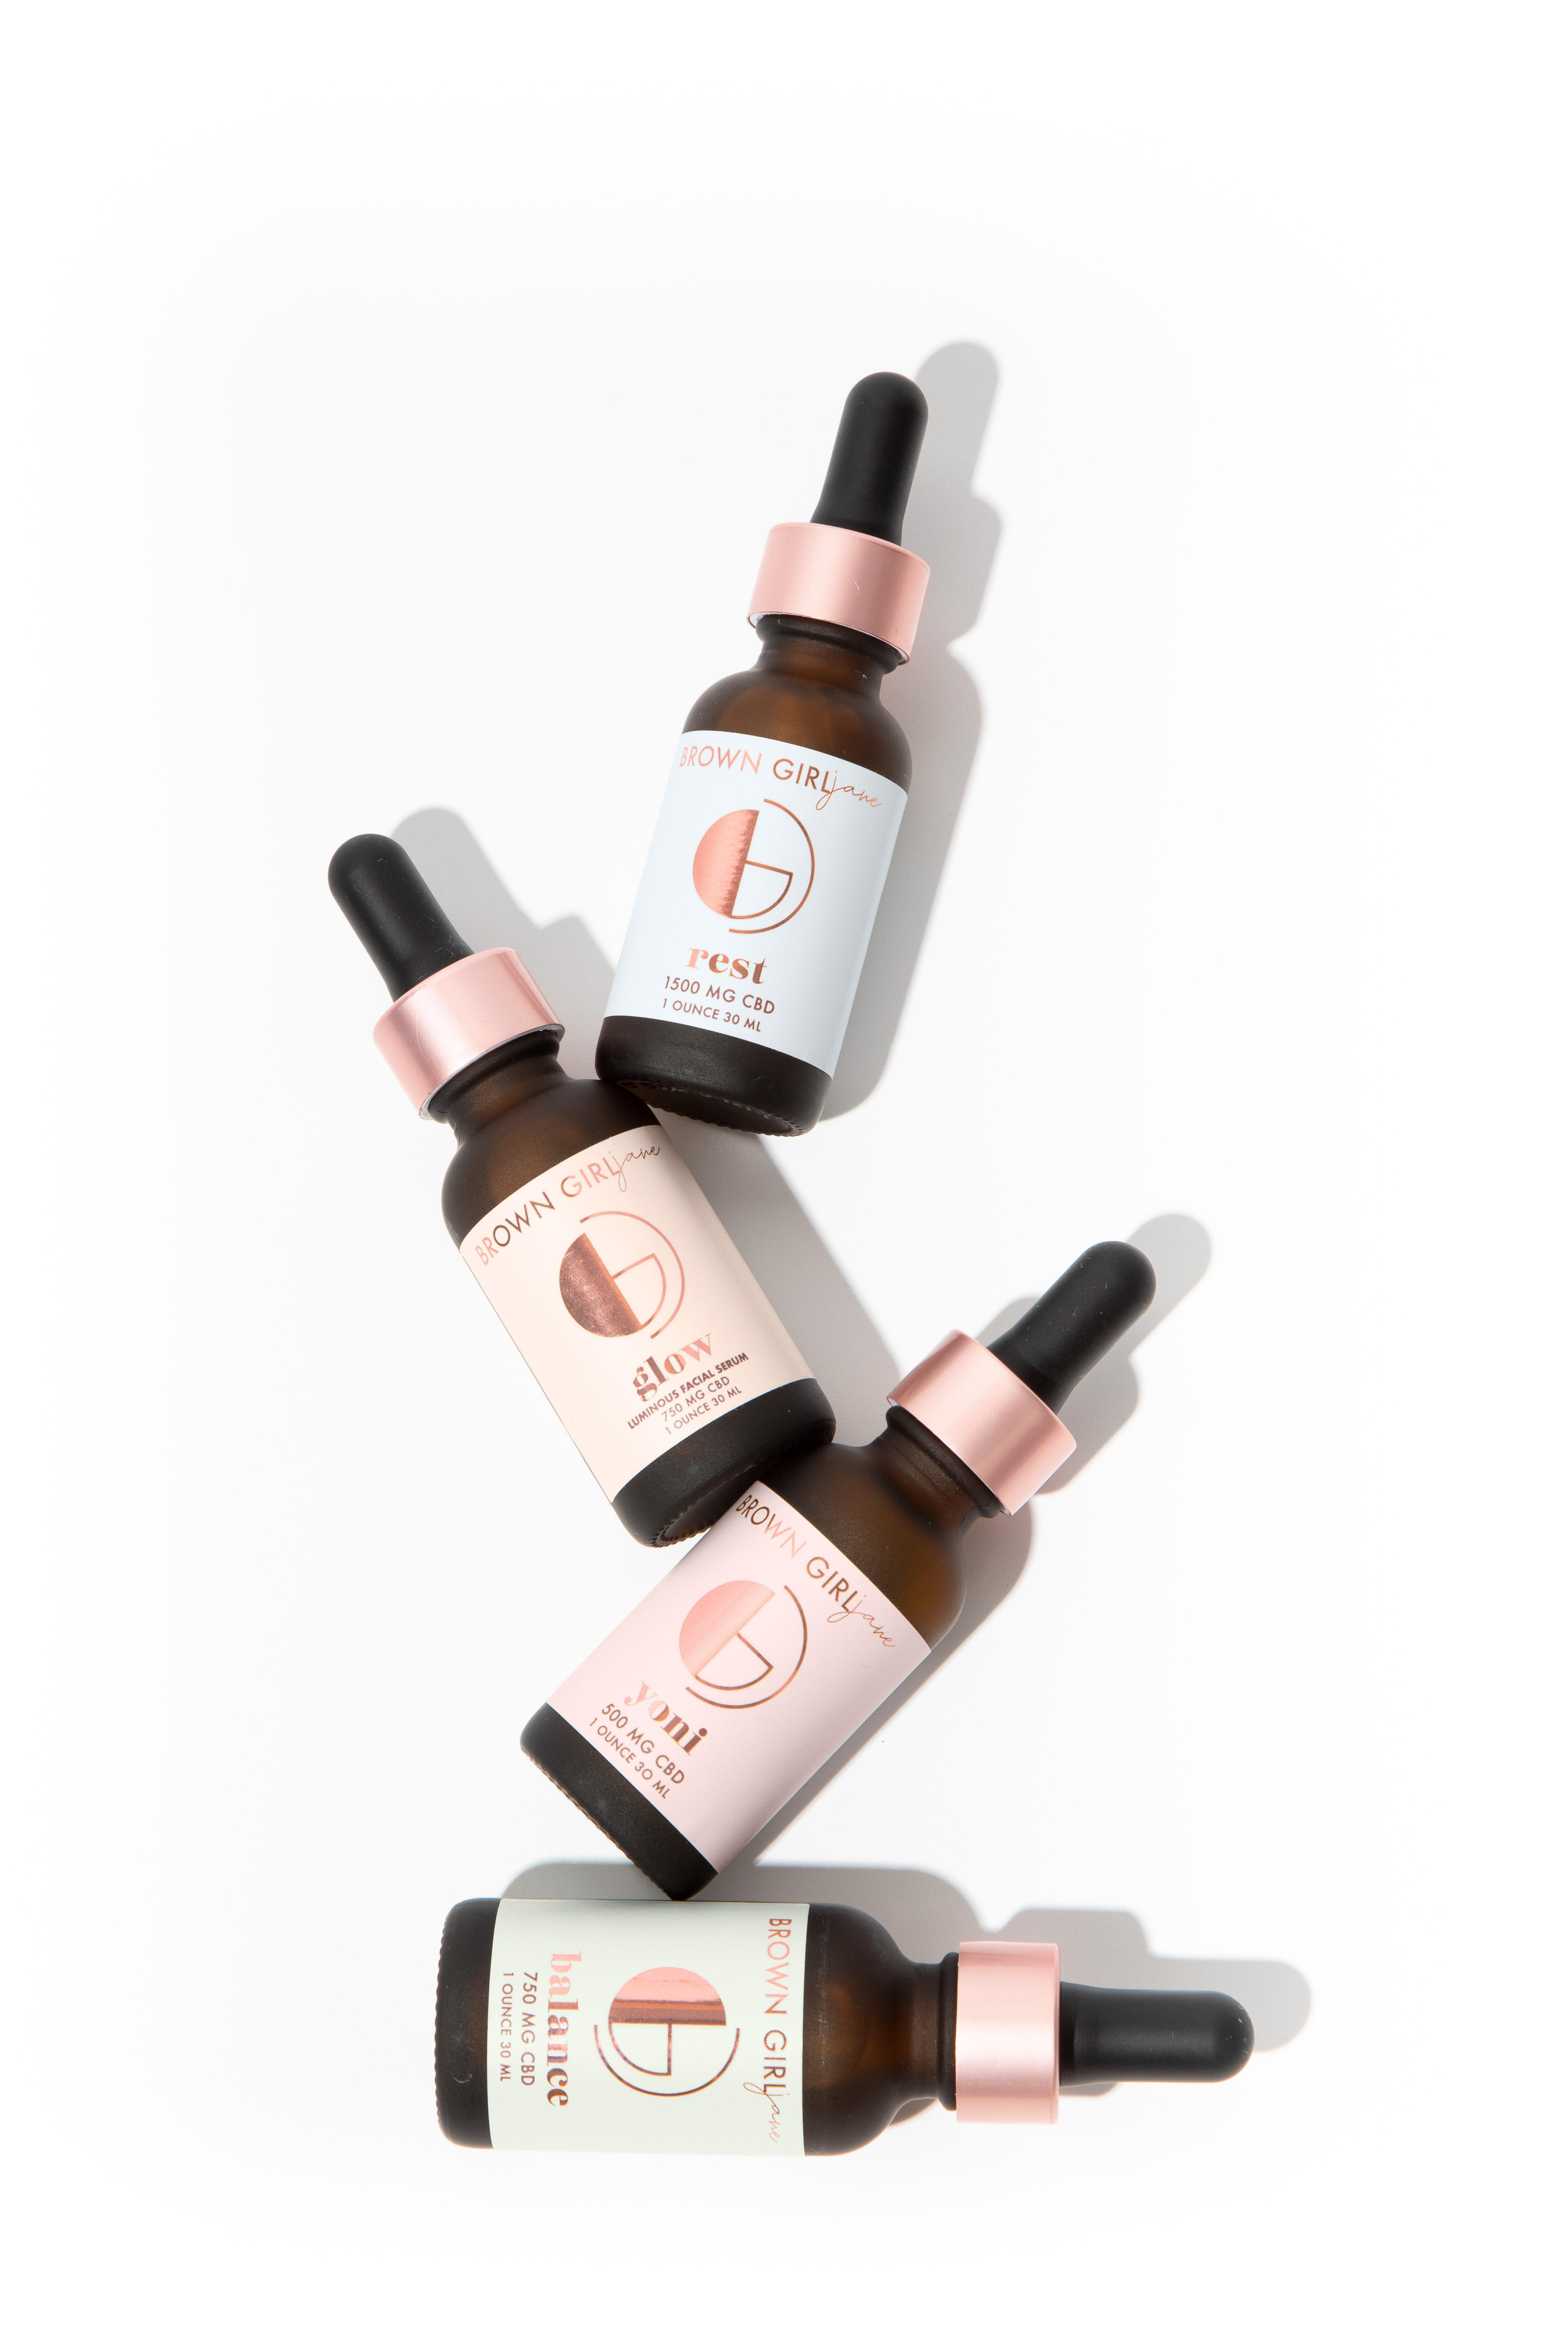 Brown Girl Jane's products include oils for both internal and external use.